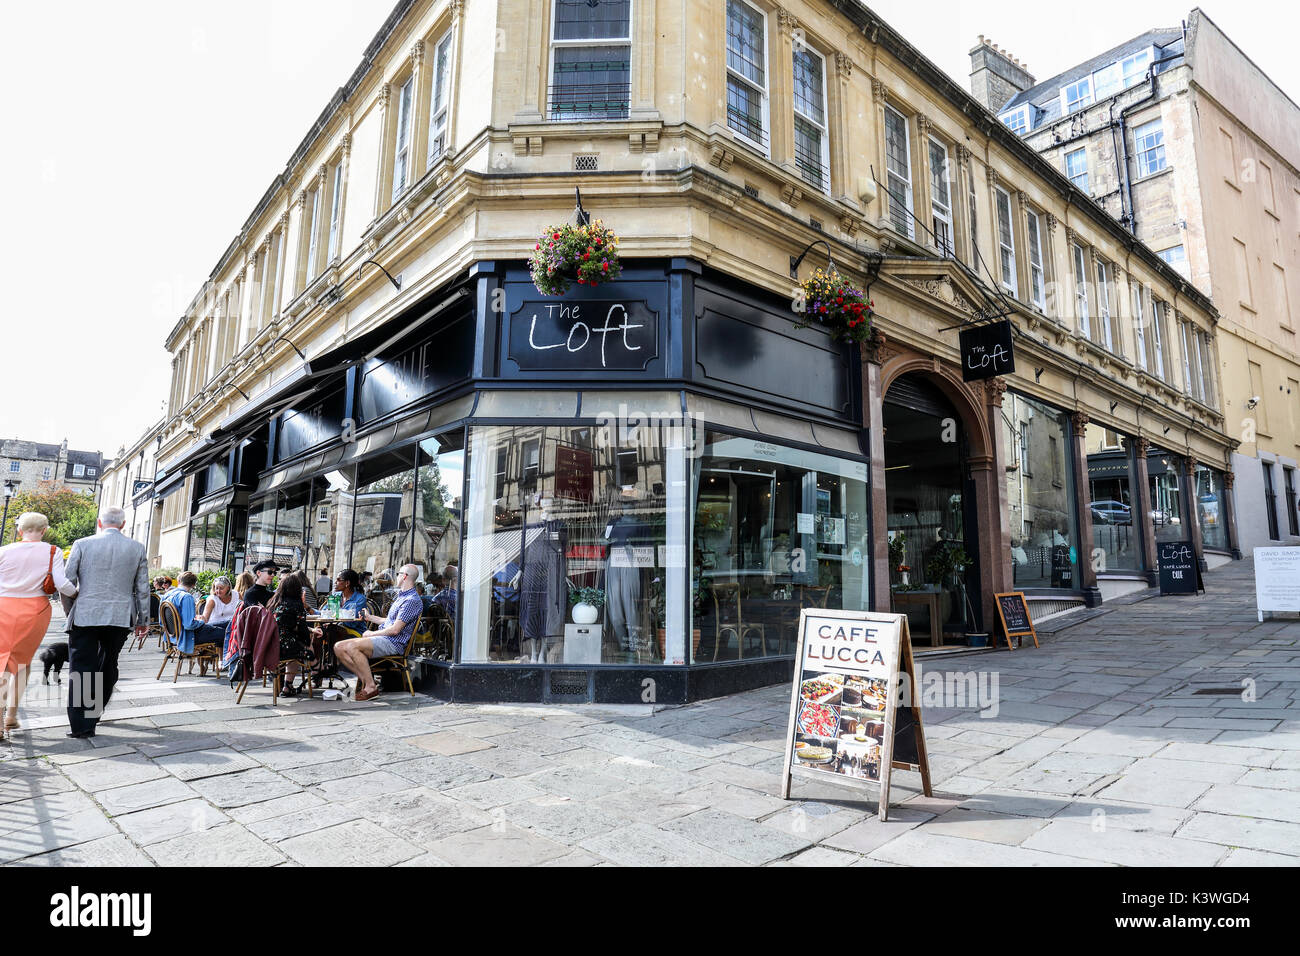 The Loft, Bartlett St Quarter, Bath, Somerset, England - Stock Image